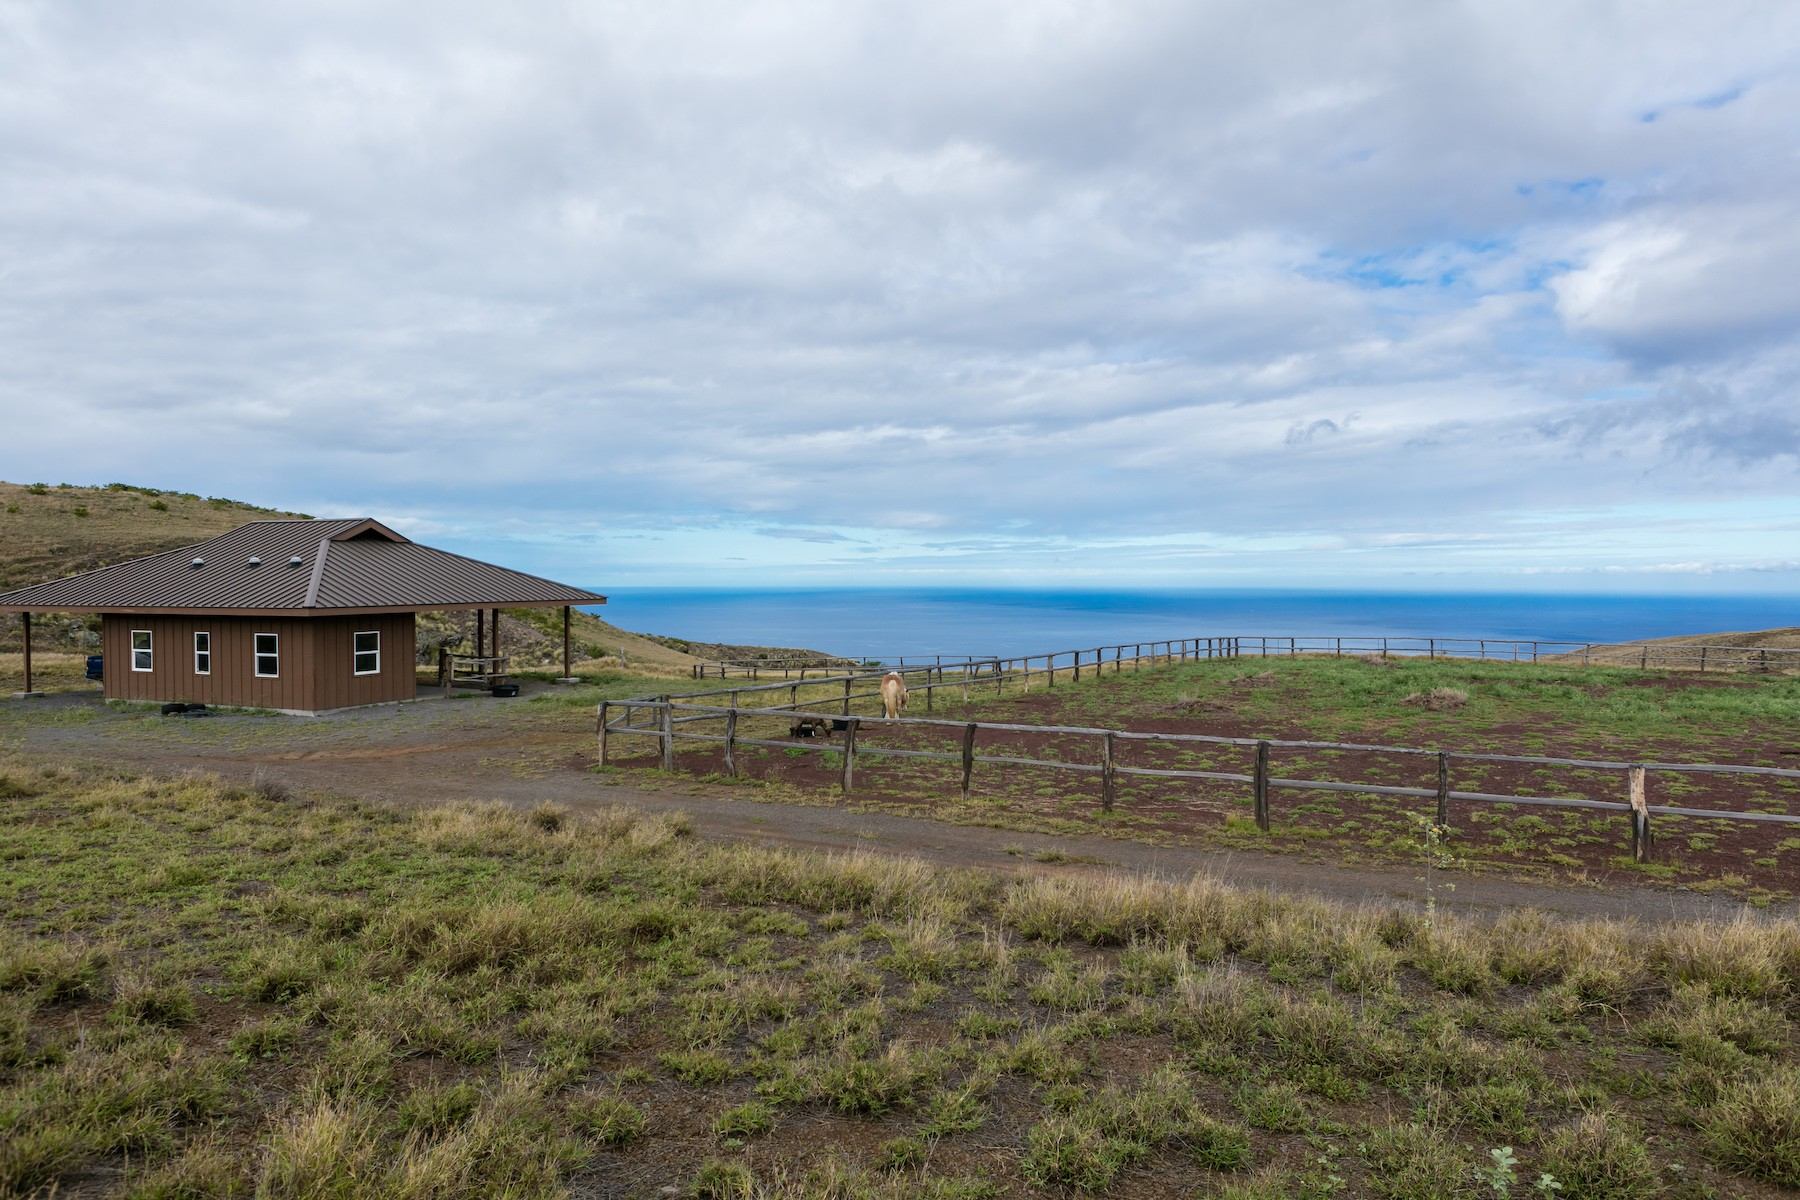 Land for Sale at Kohala Ranch 59-978 Kamakani Lp Kapaau, Hawaii 96755 United States